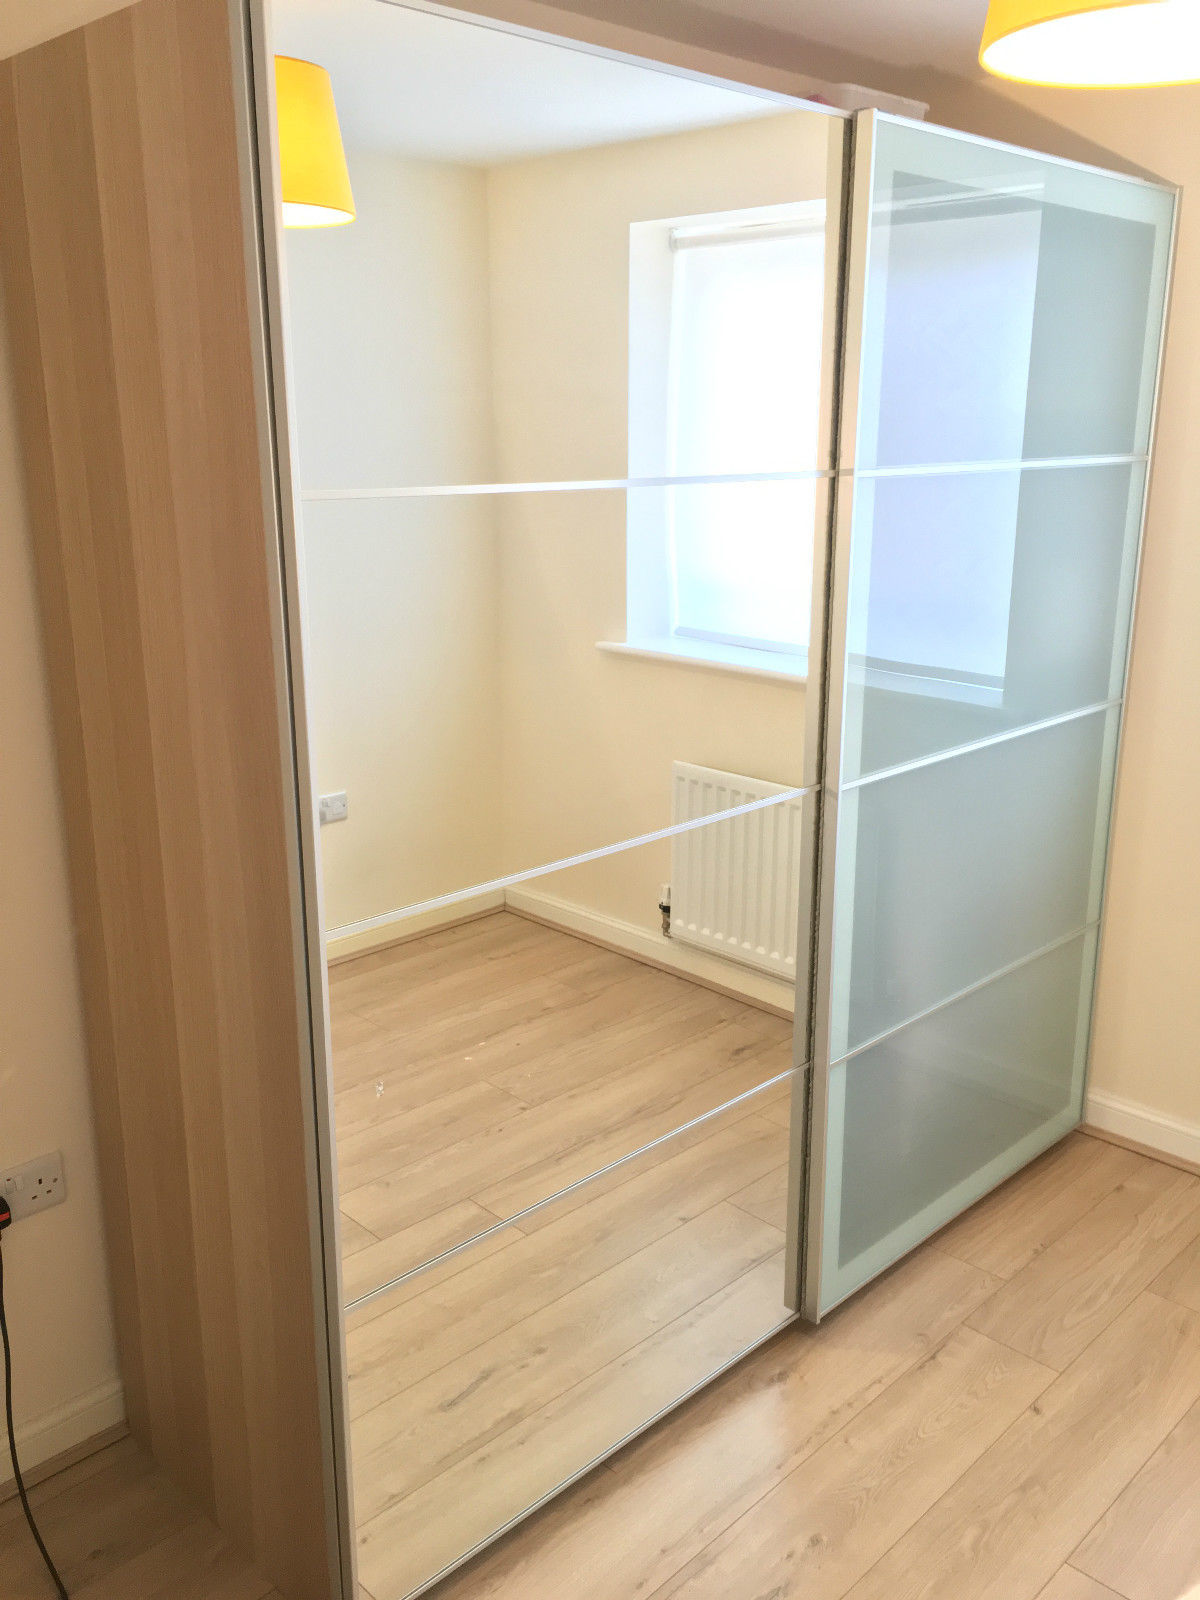 ikea-pax-double-wardrobe-with-mirror-sliding-doors